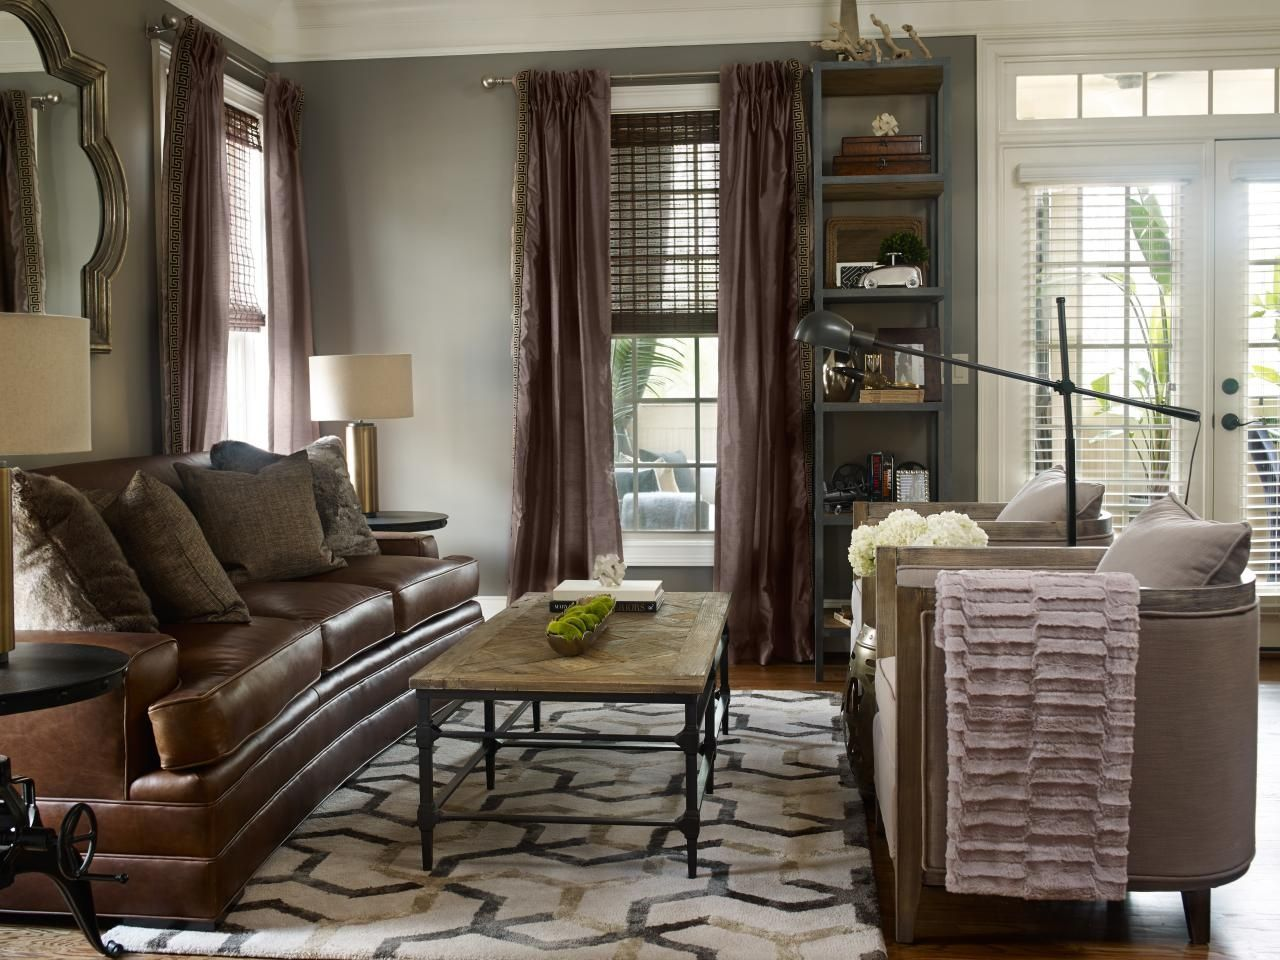 Accent Chairs To Go With Brown Leather Sofa 3 Seater And 2 Armchairs Chair Match Living Room Ideas